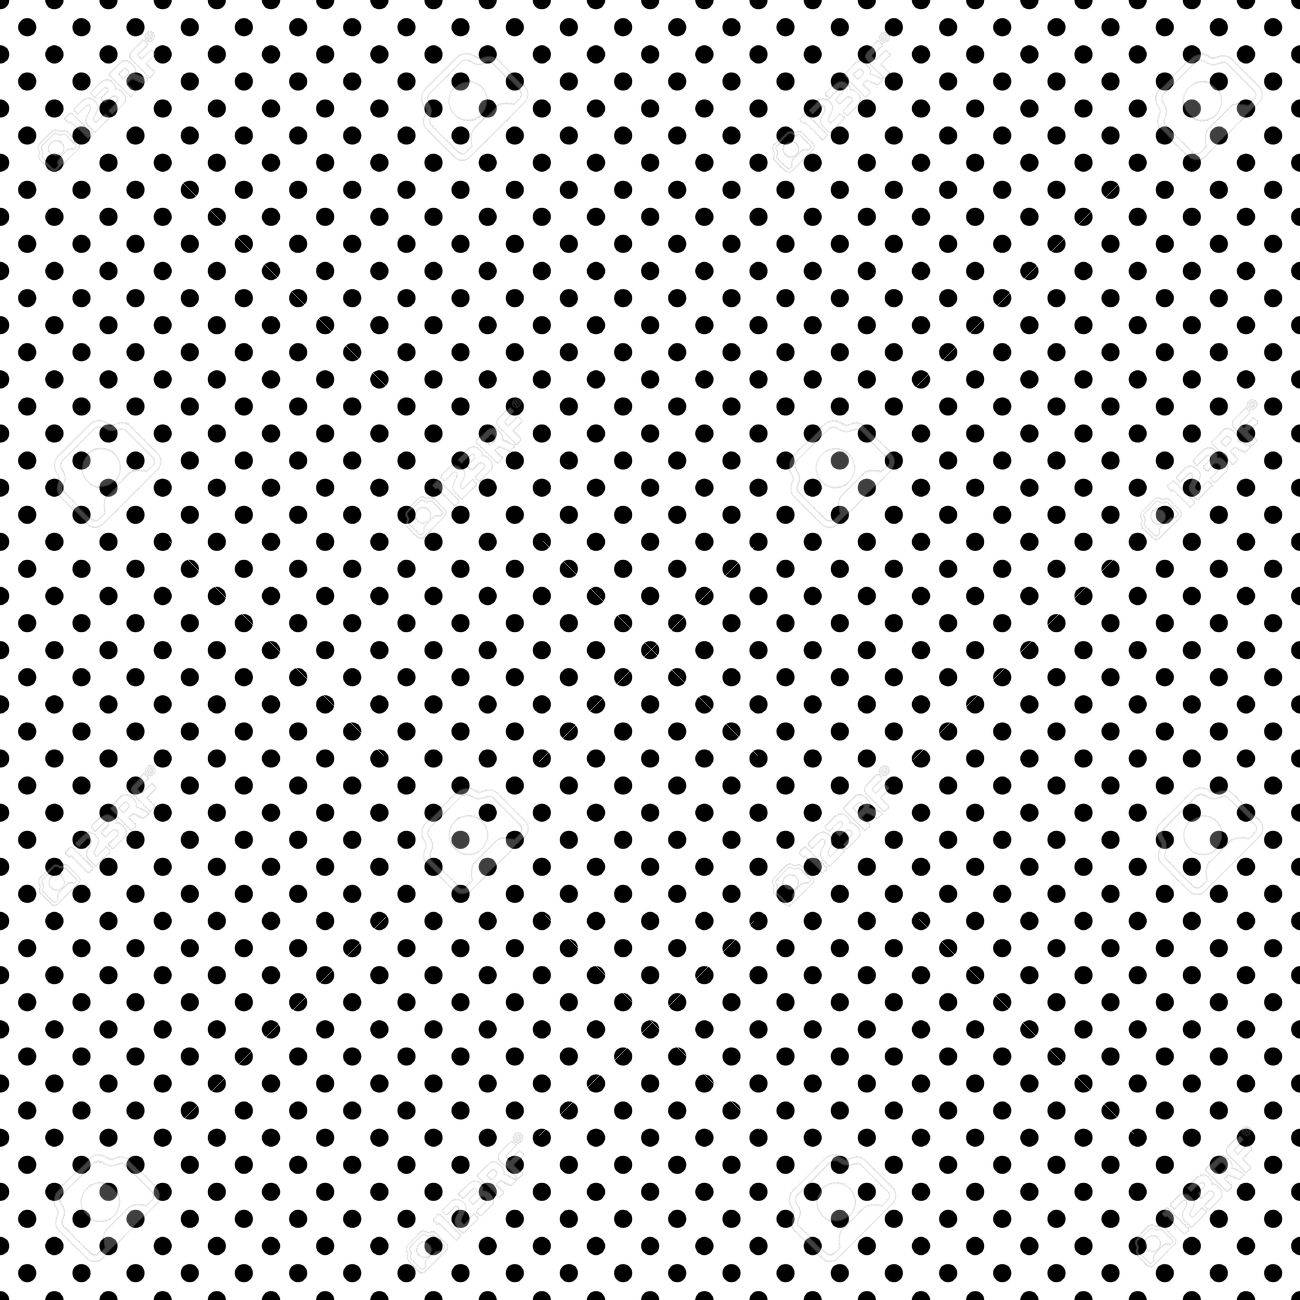 Seamless Black White Dots Stock Photo Picture And Royalty Free